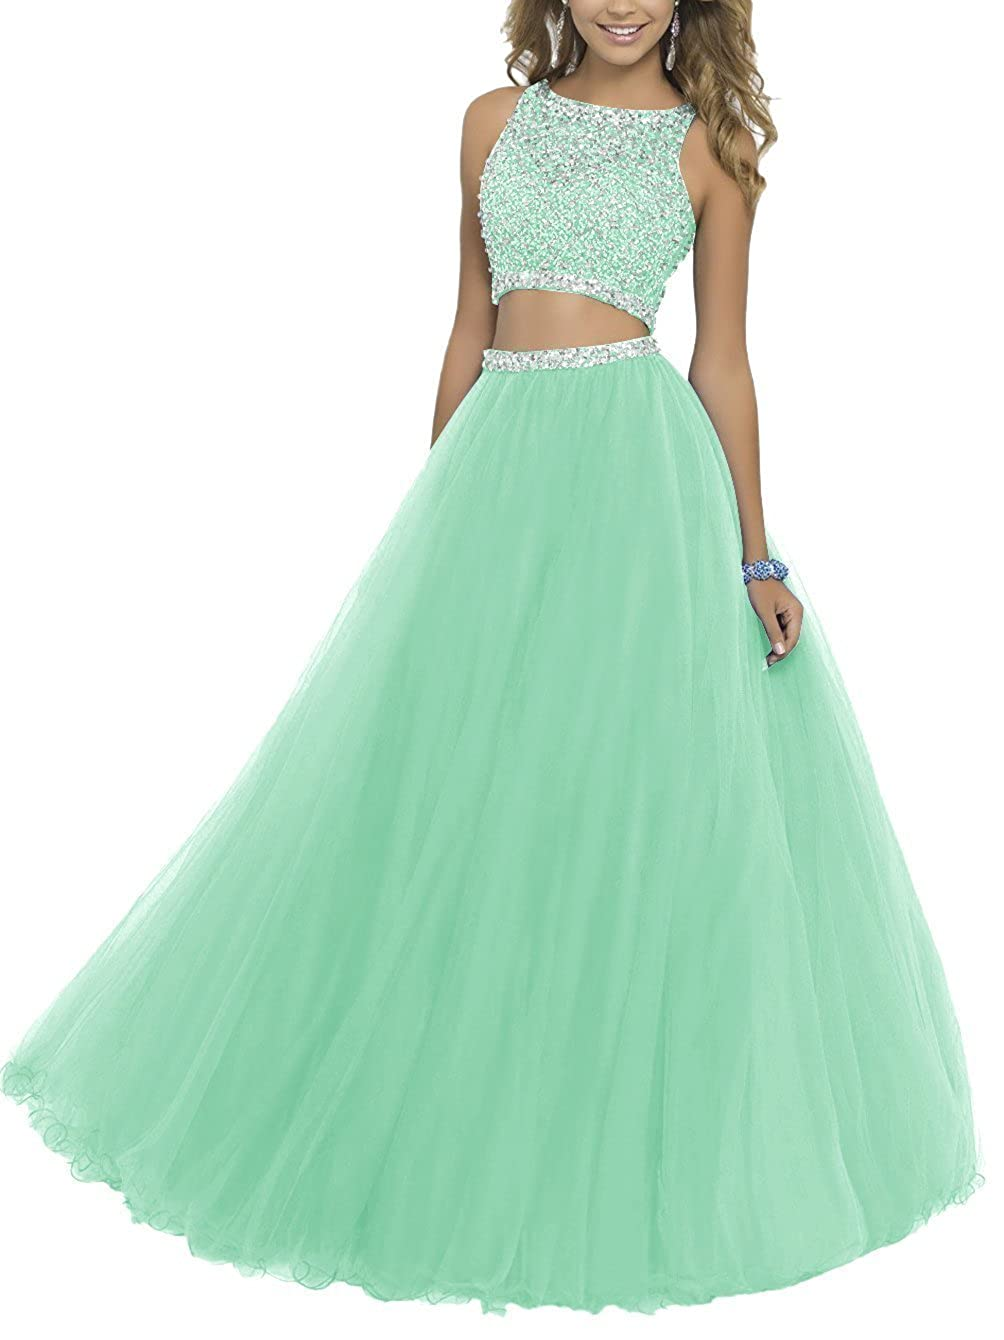 Mint SDRESS Women's Beaded Rhinestones Crewneck Aline 2 Pieces Tulle Prom Dress